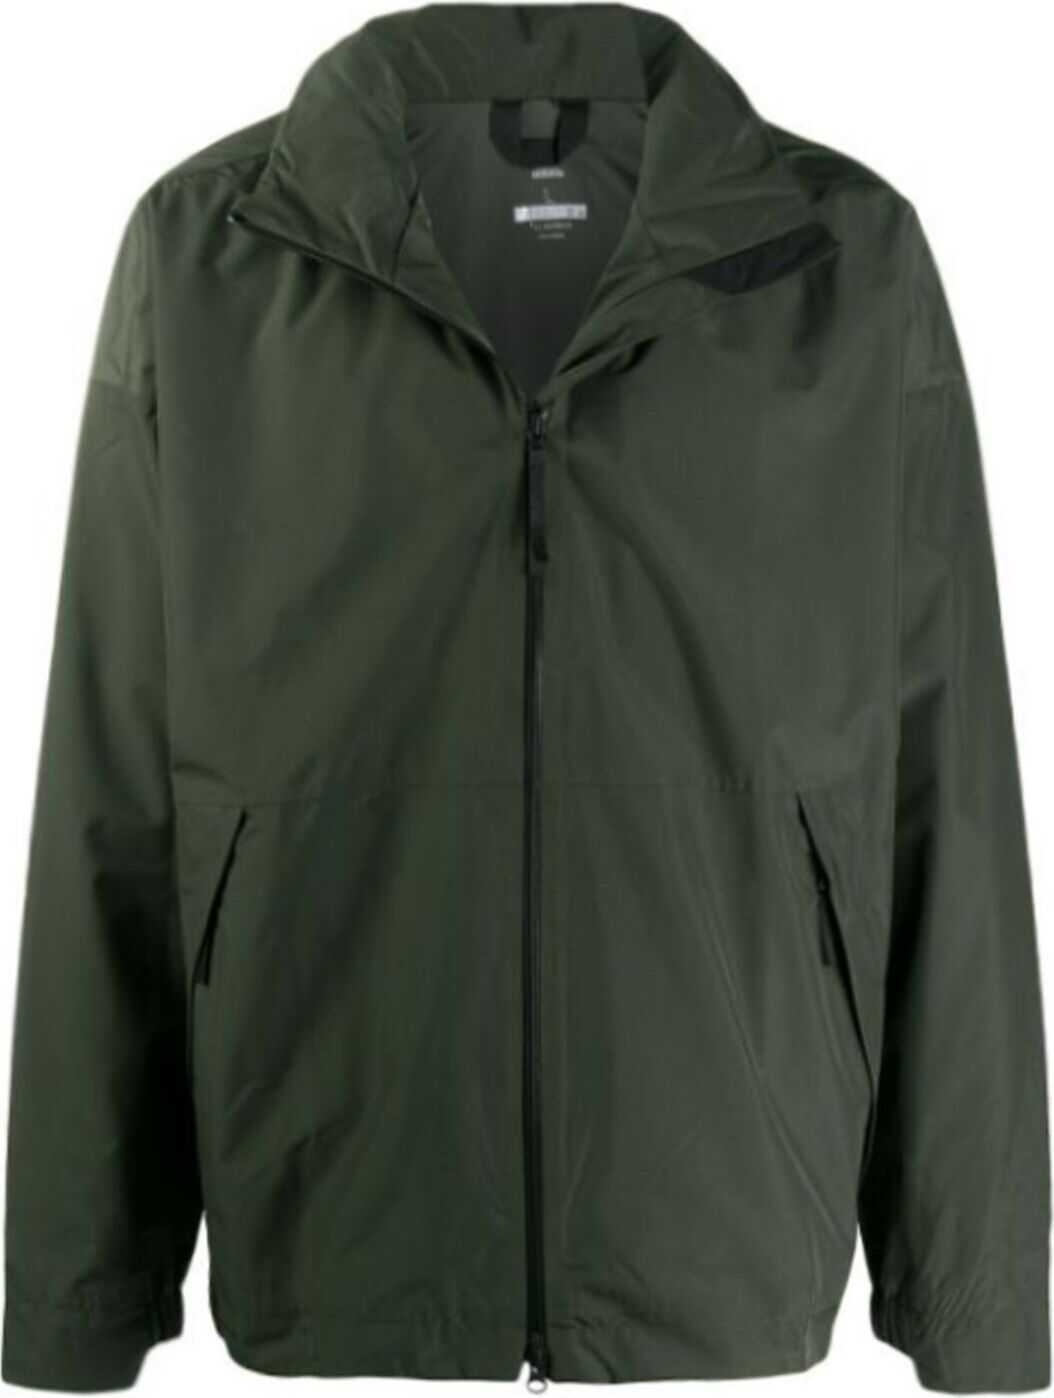 adidas Polyester Outerwear Jacket GREEN